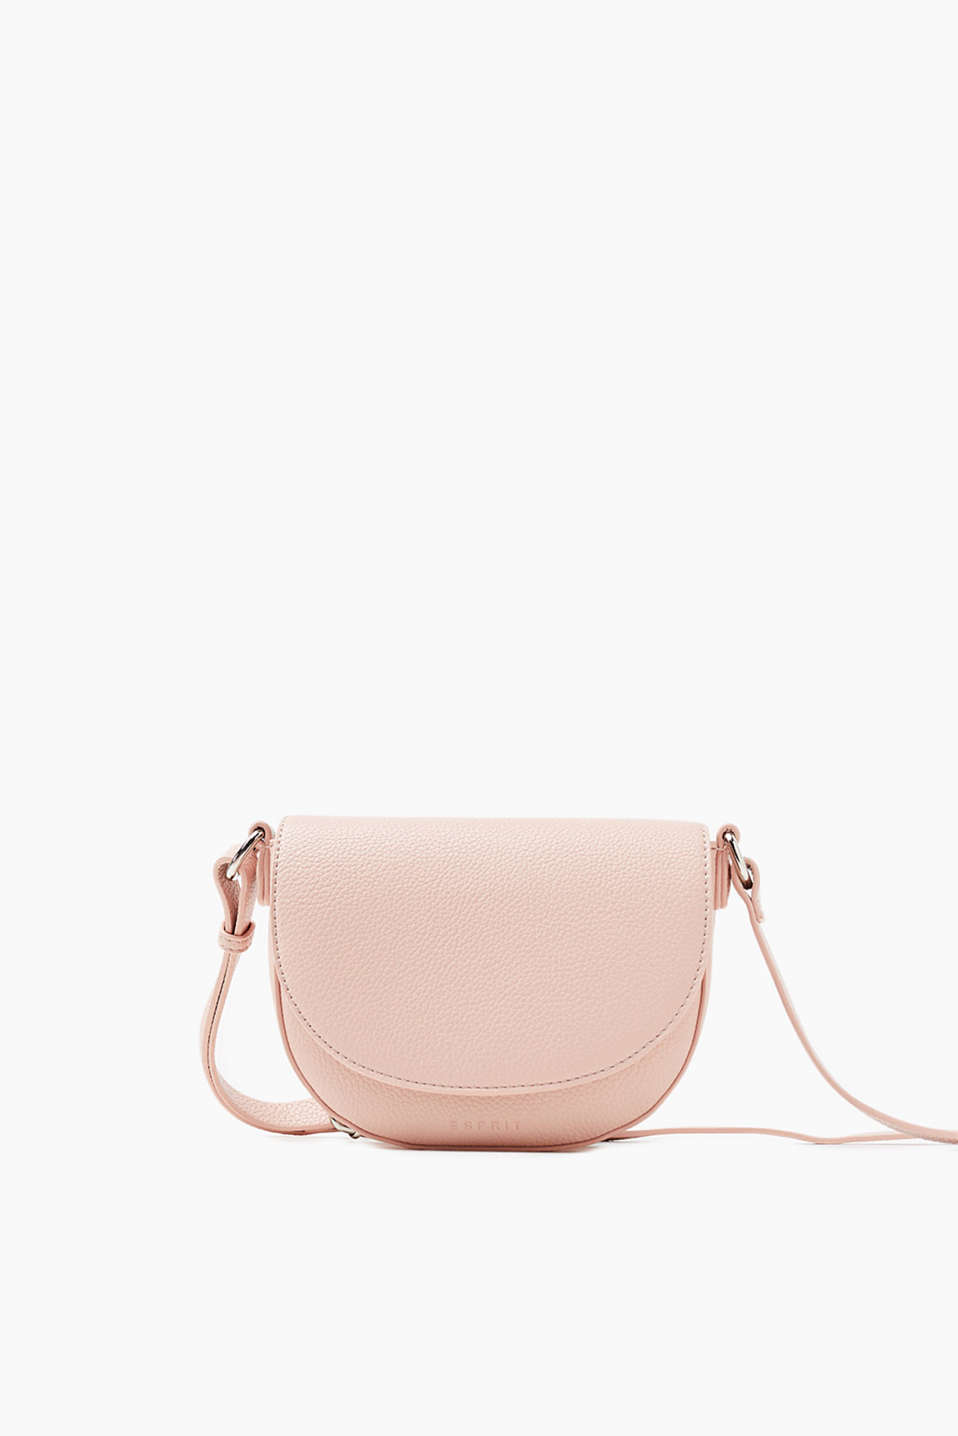 Shoulder bag made of authentically grained faux leather with a length-adjustable shoulder strap